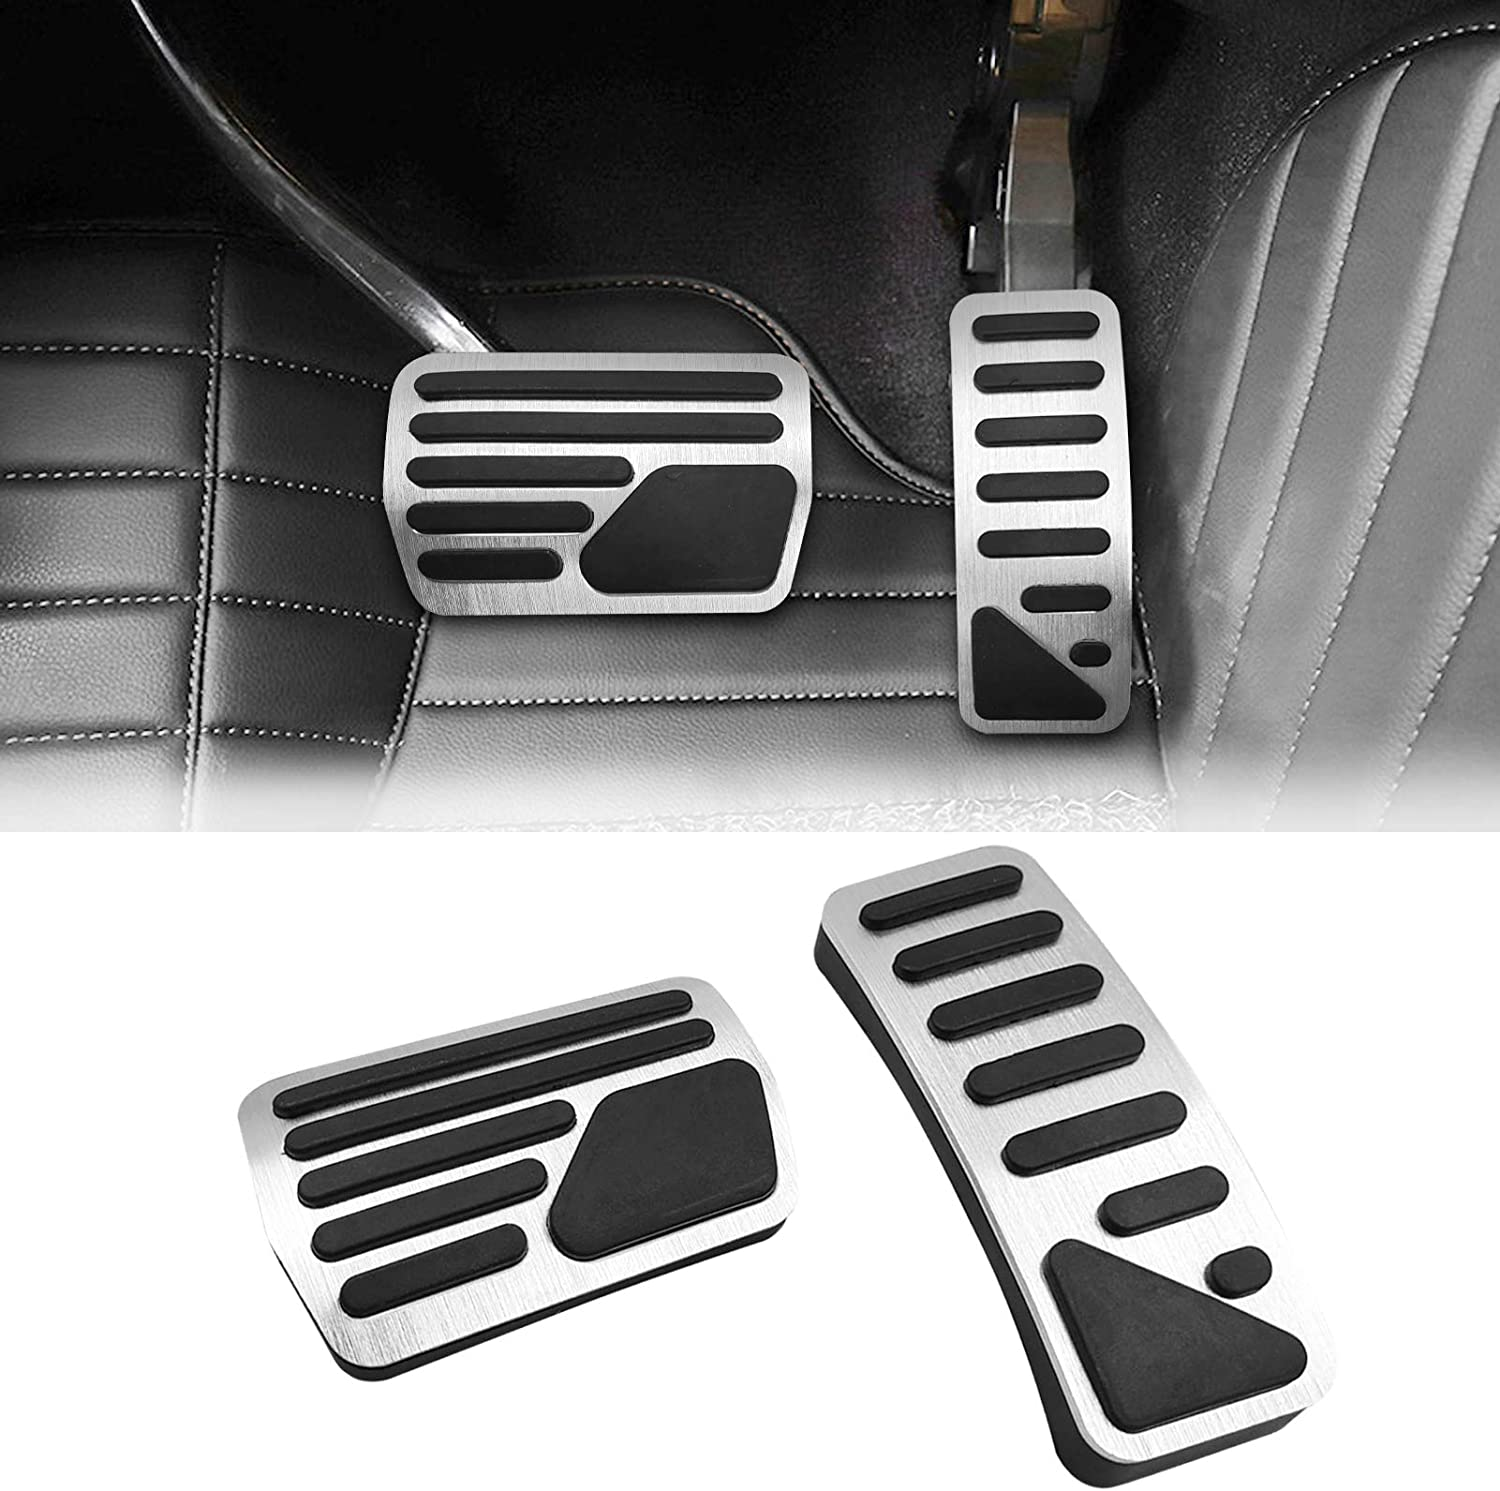 TTCR-II No Drill Pedal Covers for Jeep Grand Cherokee and Dodge ...